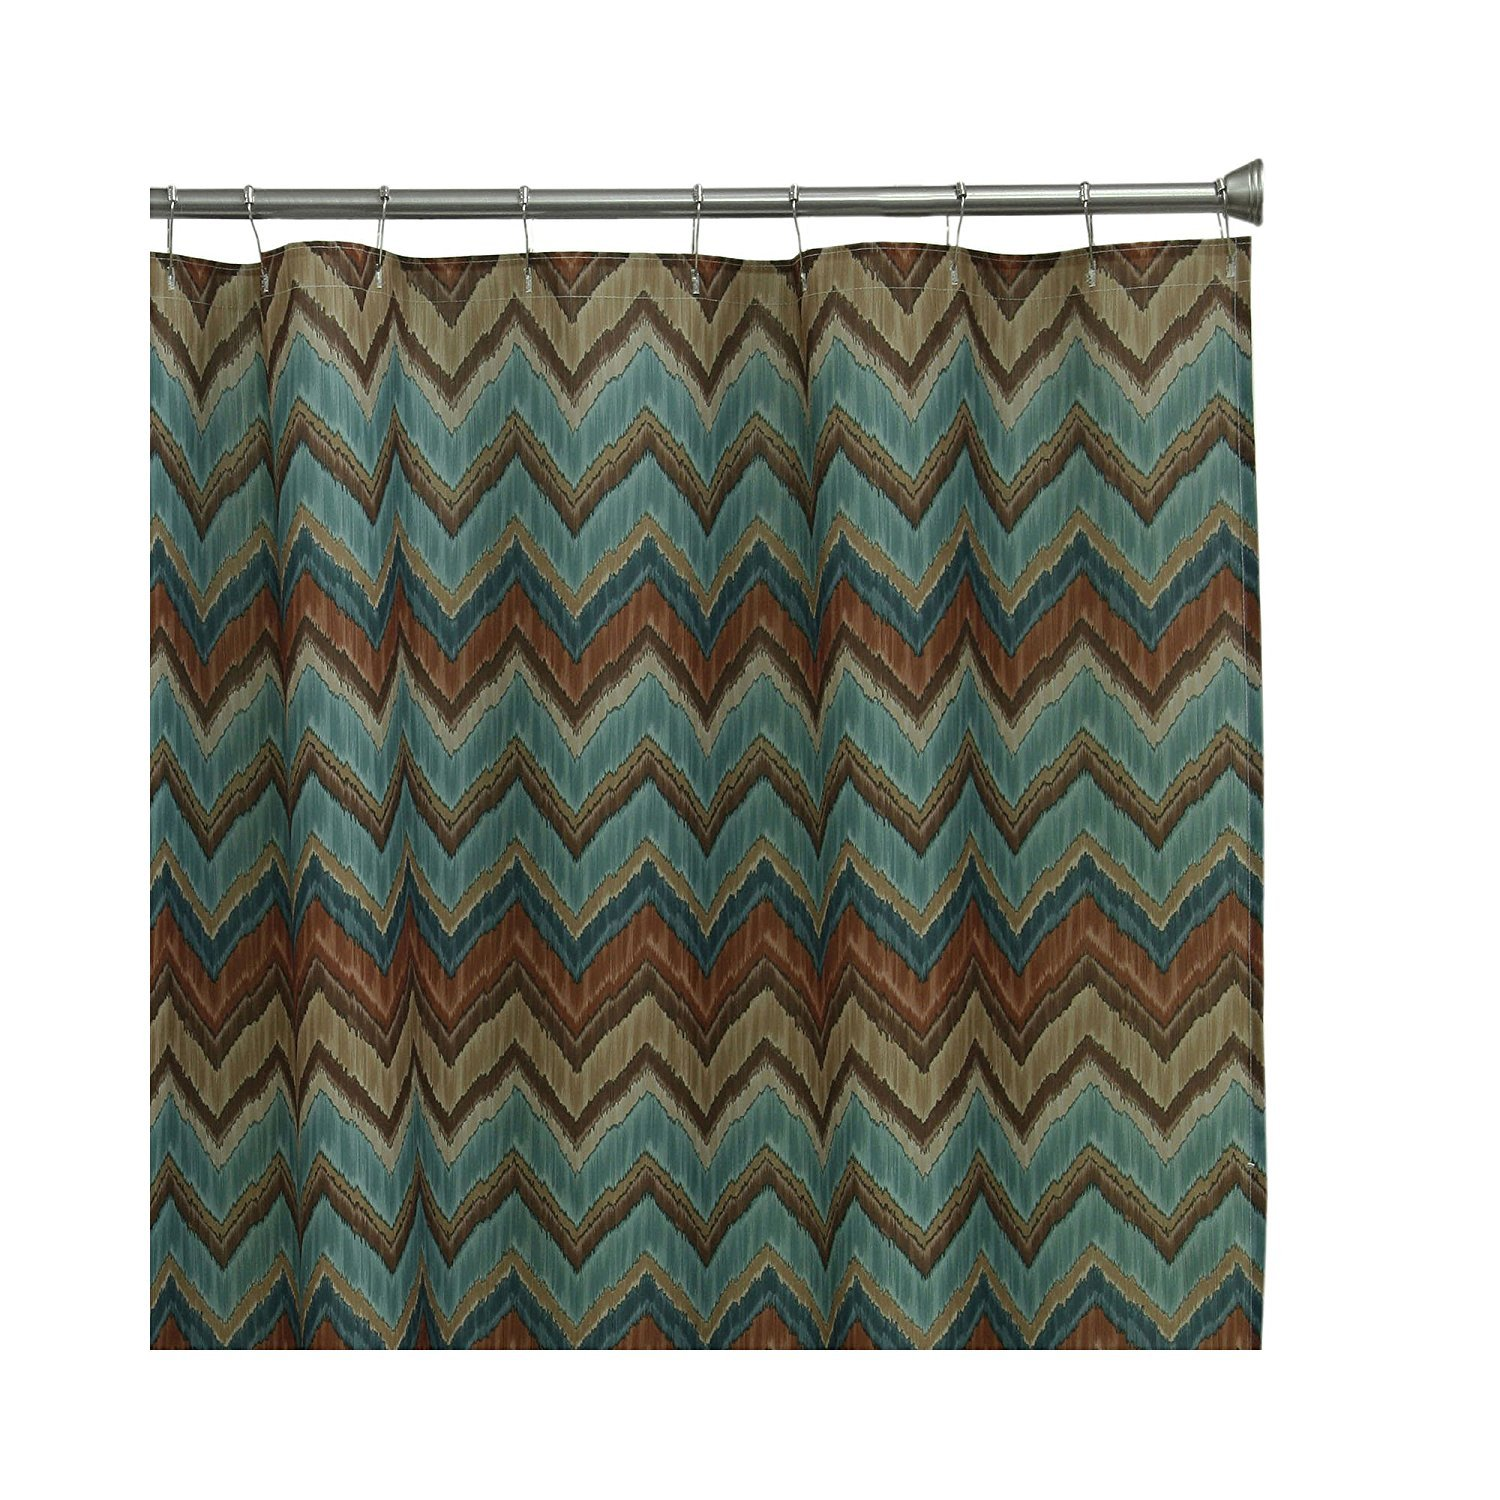 Bacova Guild Sierra Zig Zag Teal Shower Curtain